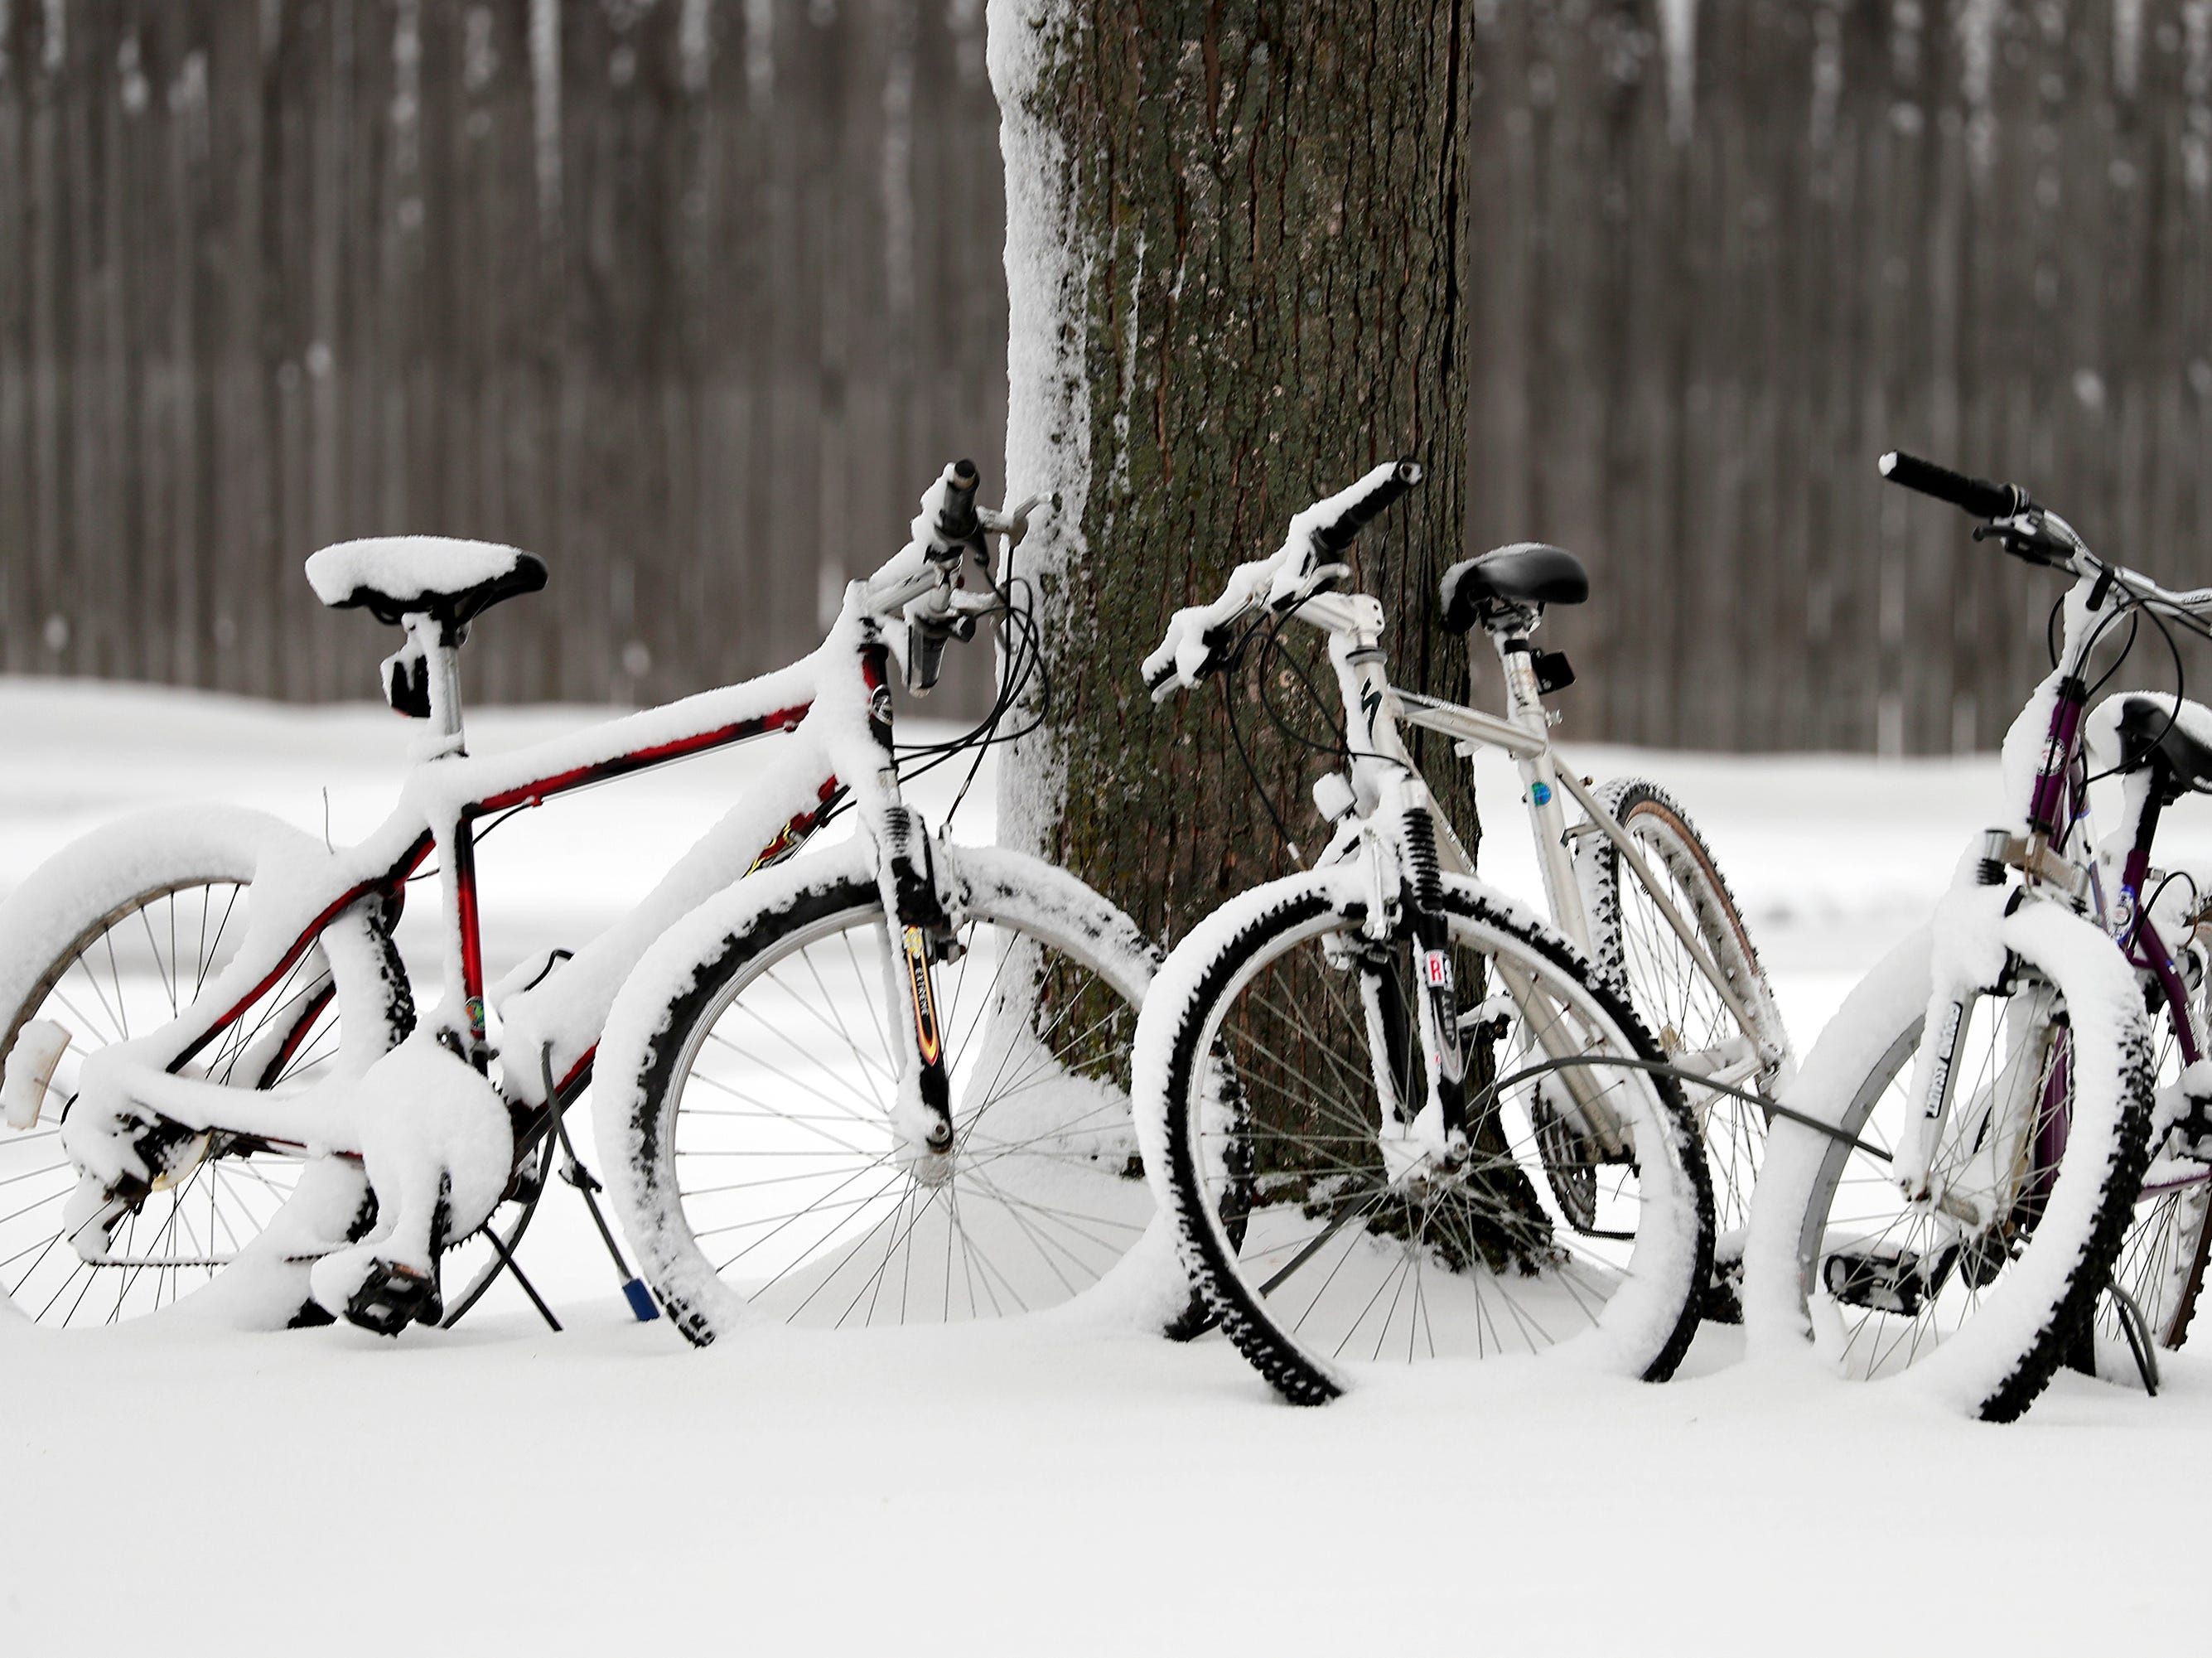 Bicycles blanketed in snow following a spring snow storm on Thursday, April 11, 2019, in Combined Locks, Wis. Wm. Glasheen/USA TODAY NETWORK-Wisconsin.